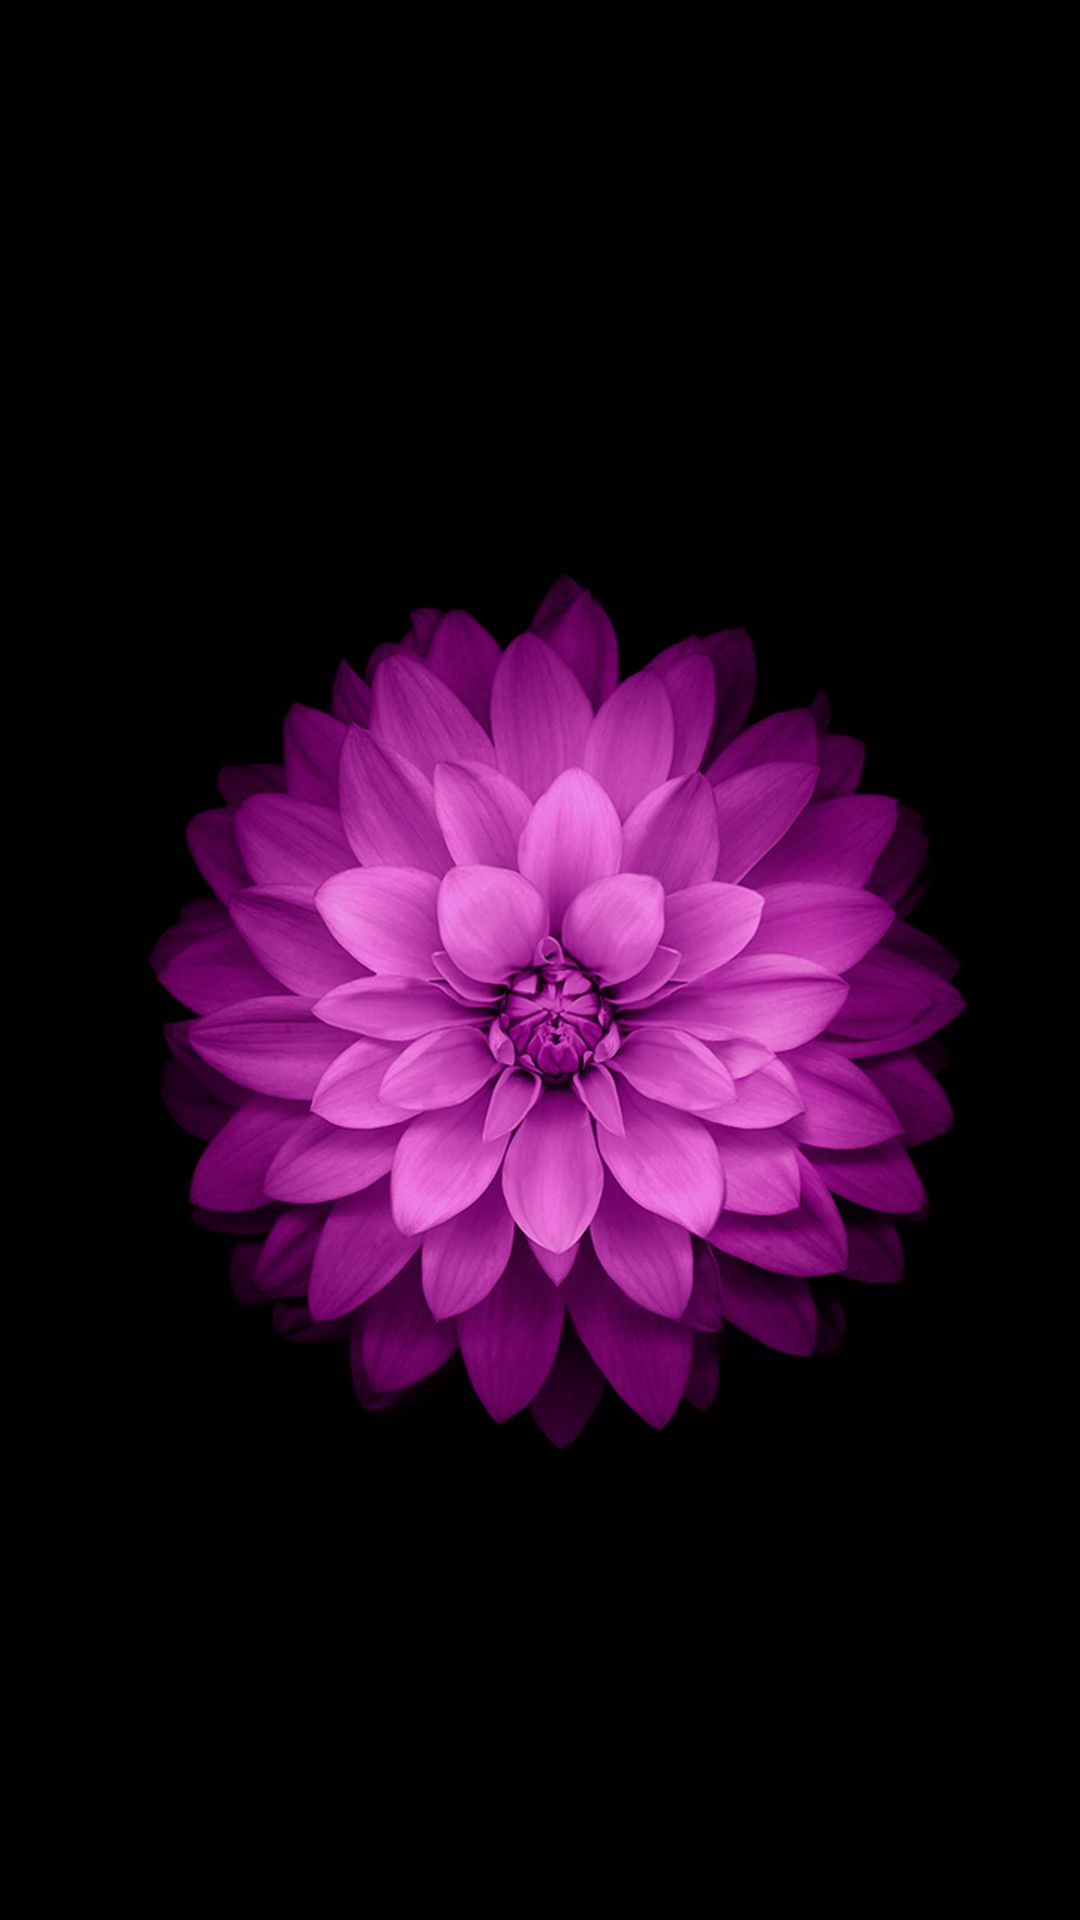 1080x1920 iPhone 6 Plus Wallpaper Official Purple Lotus